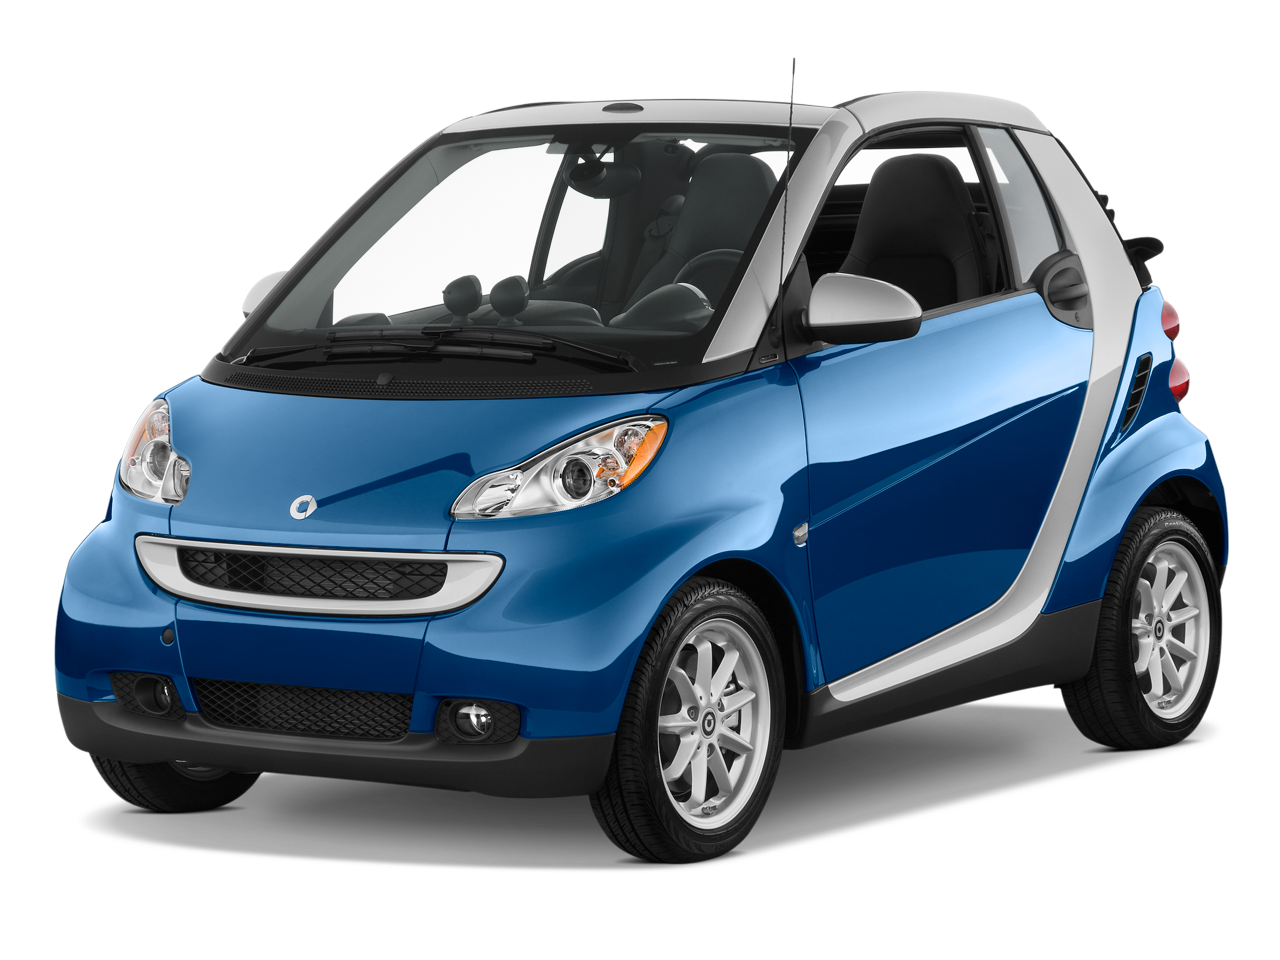 smart usa responds to fortwo iihs crash tests photo gallery. Black Bedroom Furniture Sets. Home Design Ideas